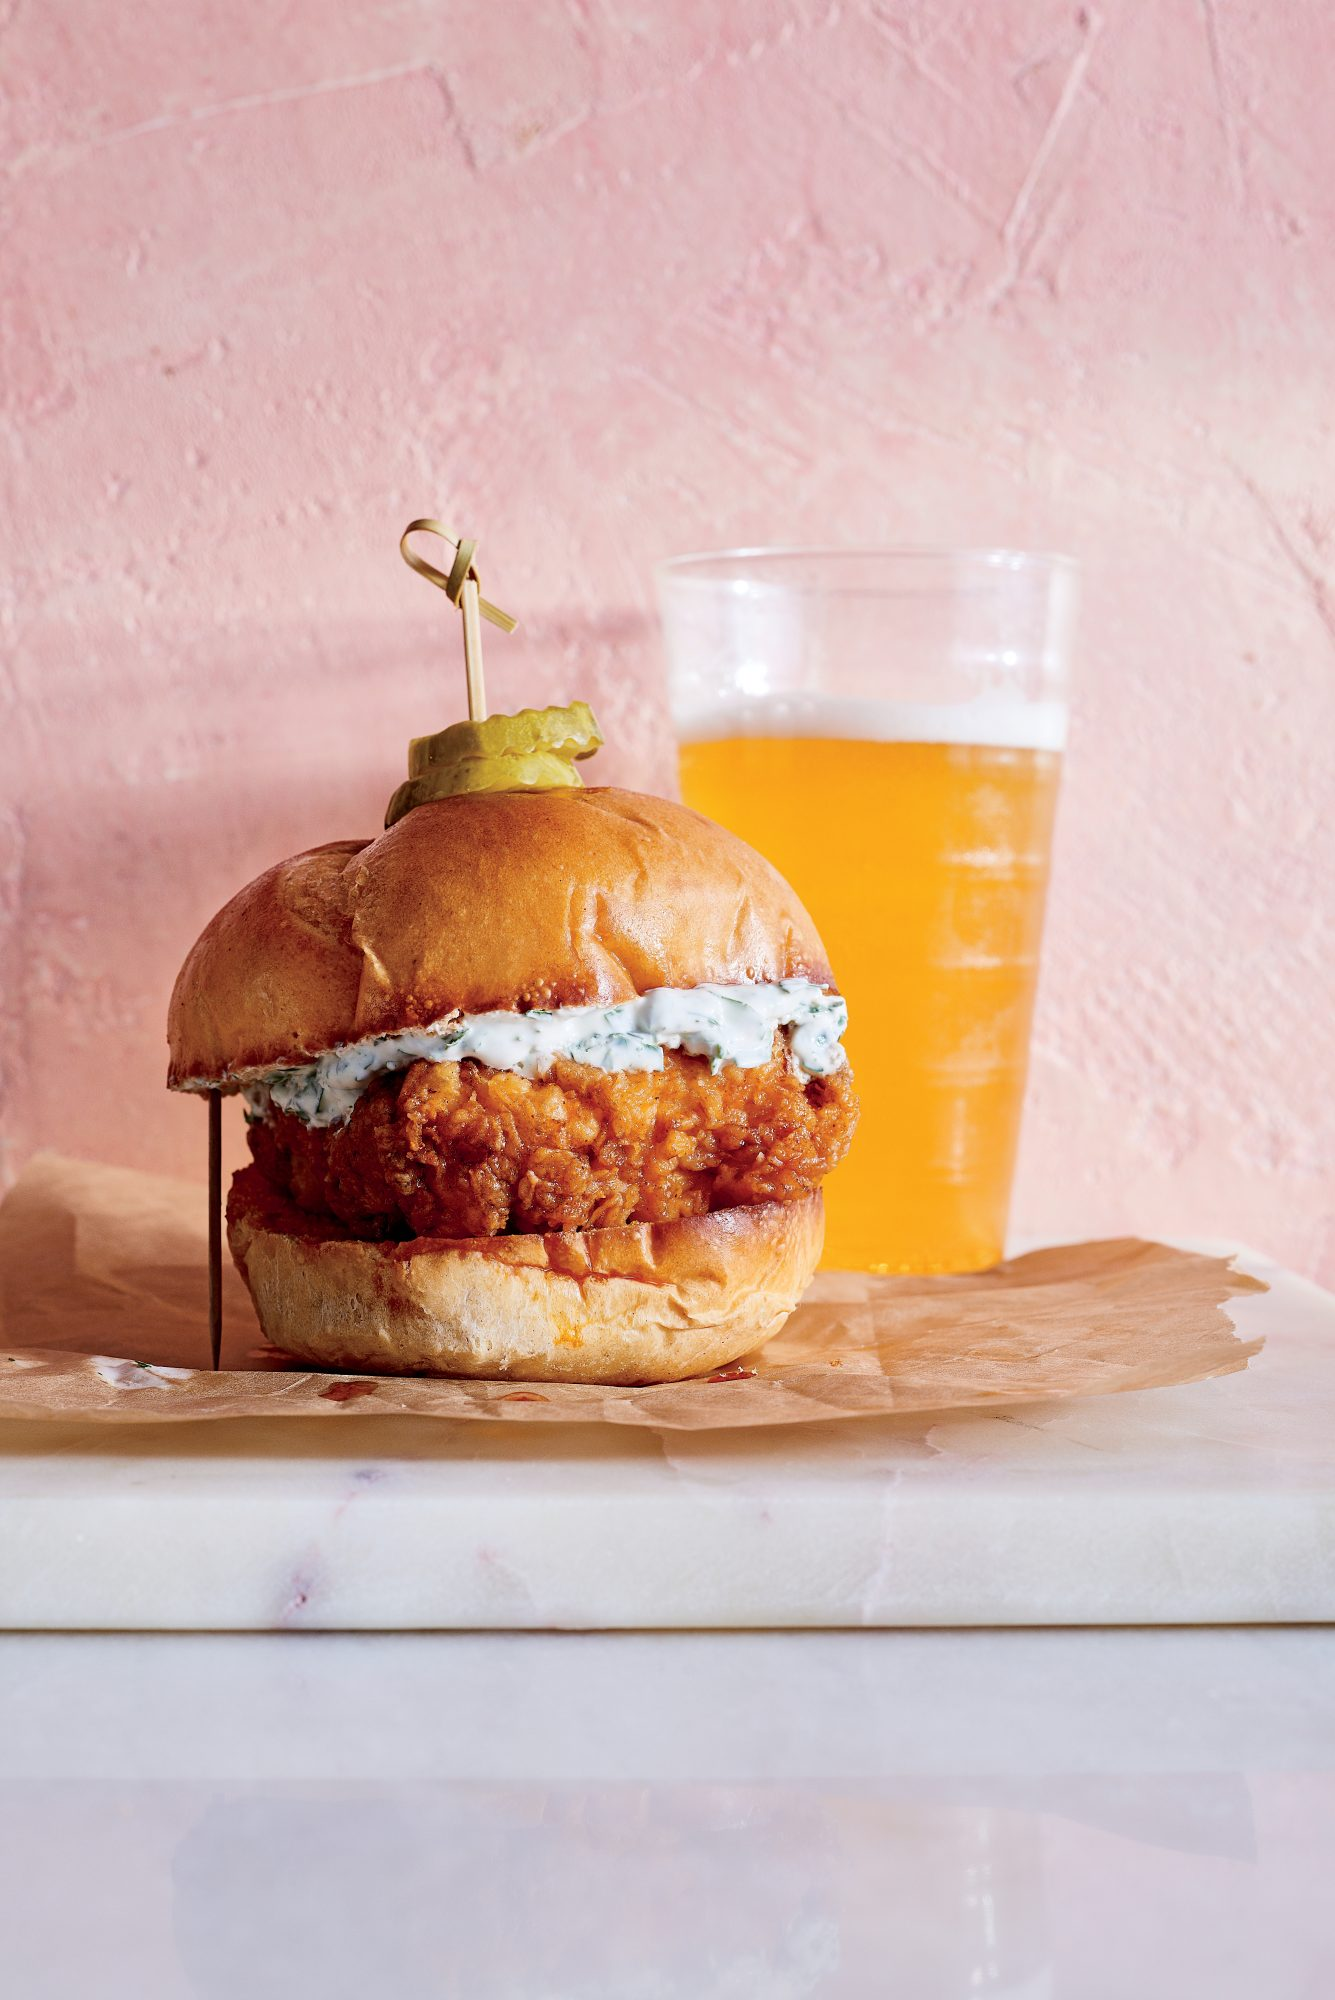 Buttermilk-Fried Nashville Hot Fish Sandwich